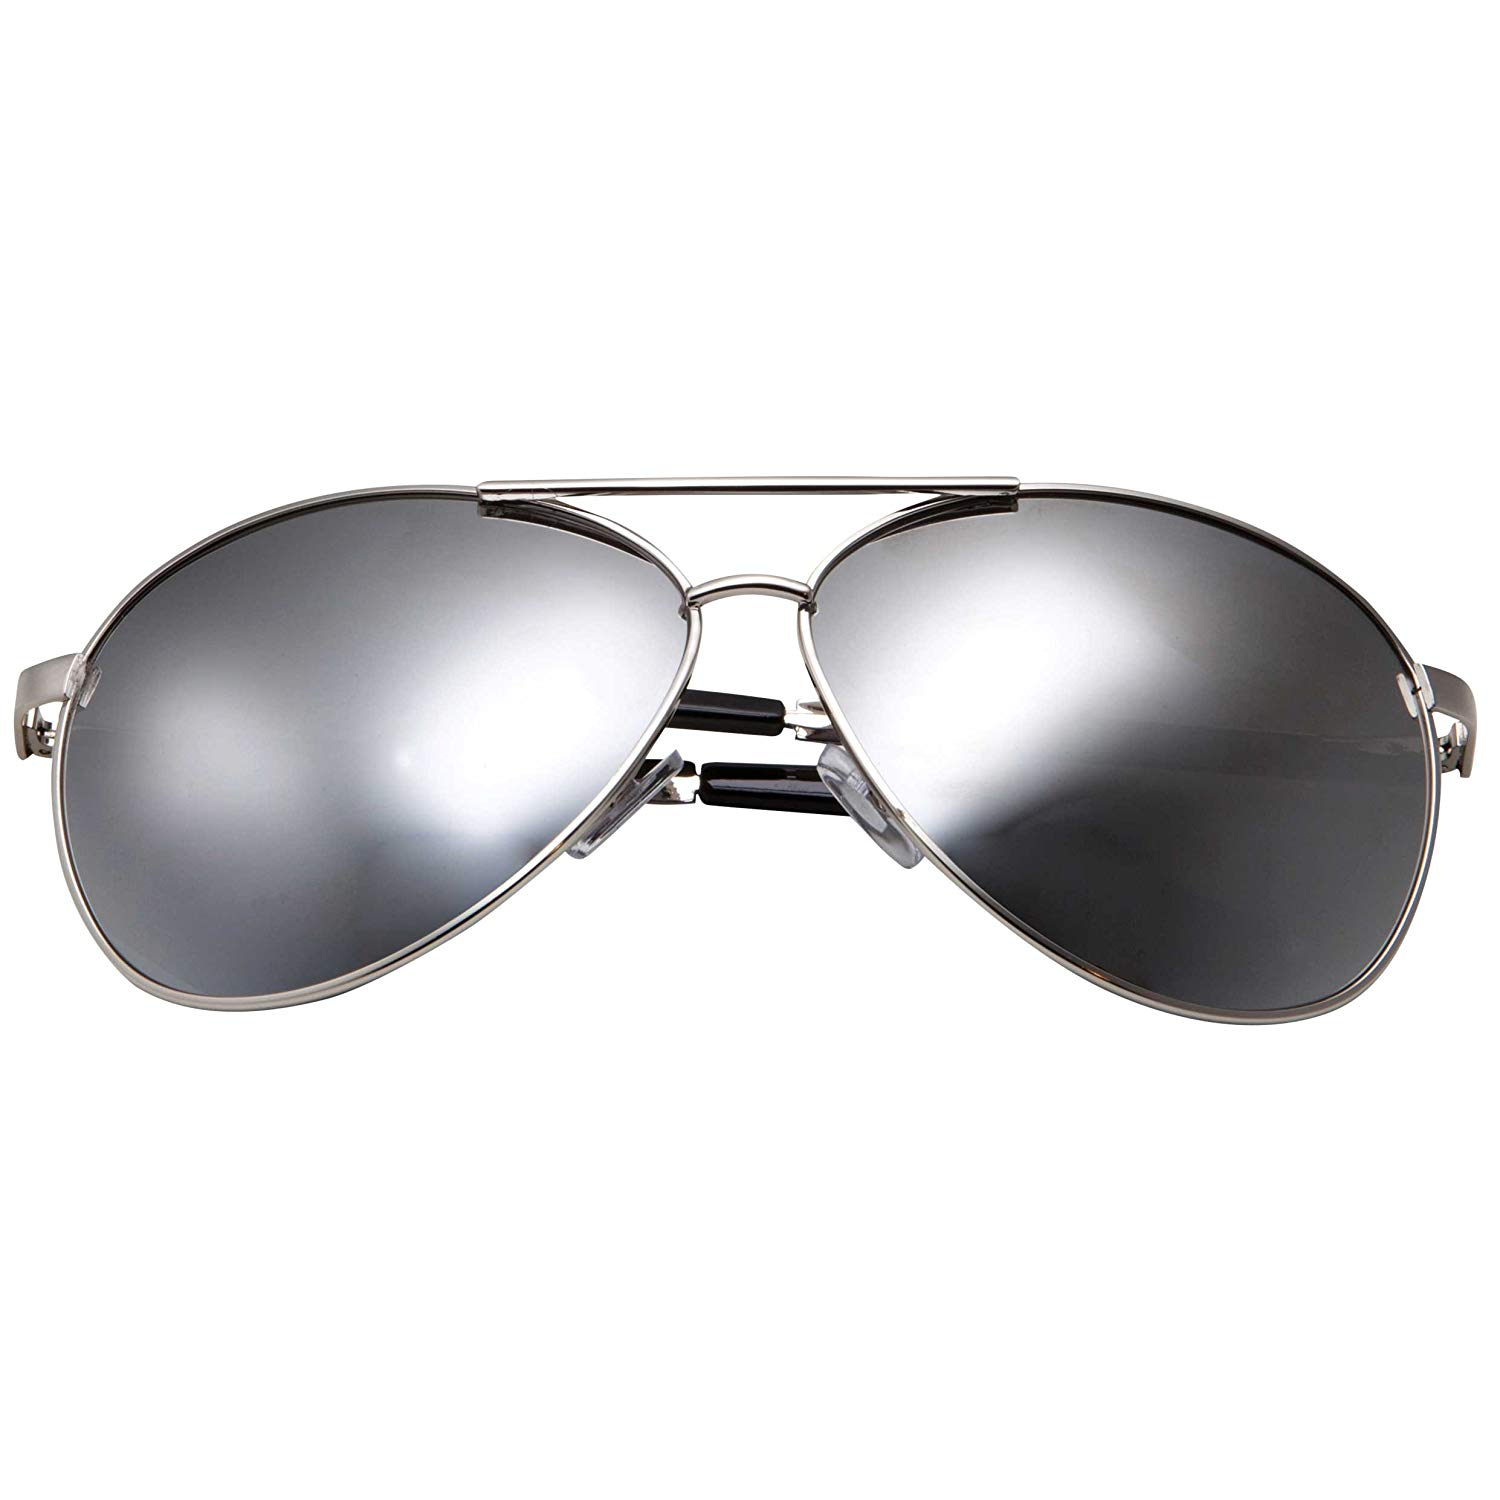 90dc0abec0 Get Quotations · grinderPUNCH - Big XL Wide Frame Extra Large Aviator  Sunglasses Oversized 148mm